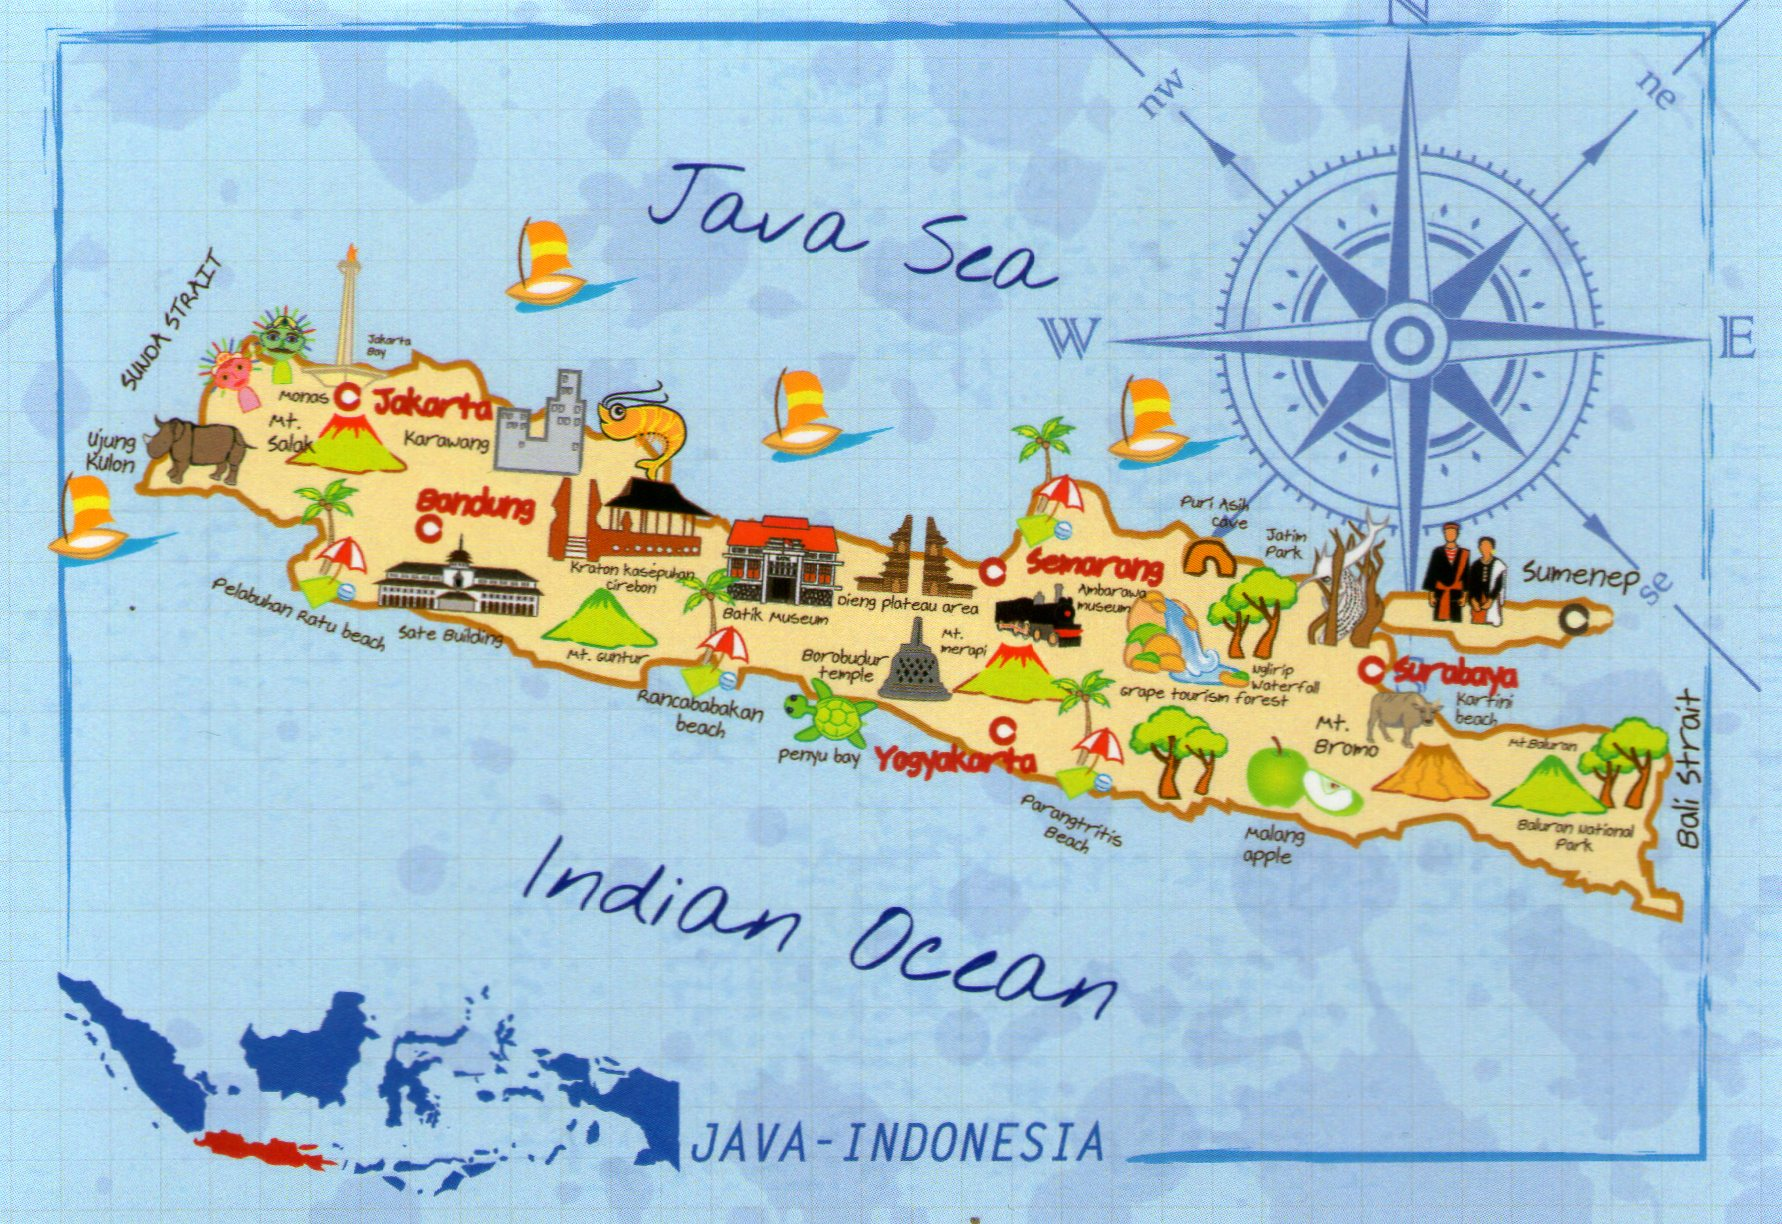 a history of indonesia and the island of java The colonial history of indonesia java was a militant conflict in 1811 between the united kingdom and the netherlands which occurred on the indonesian island java.